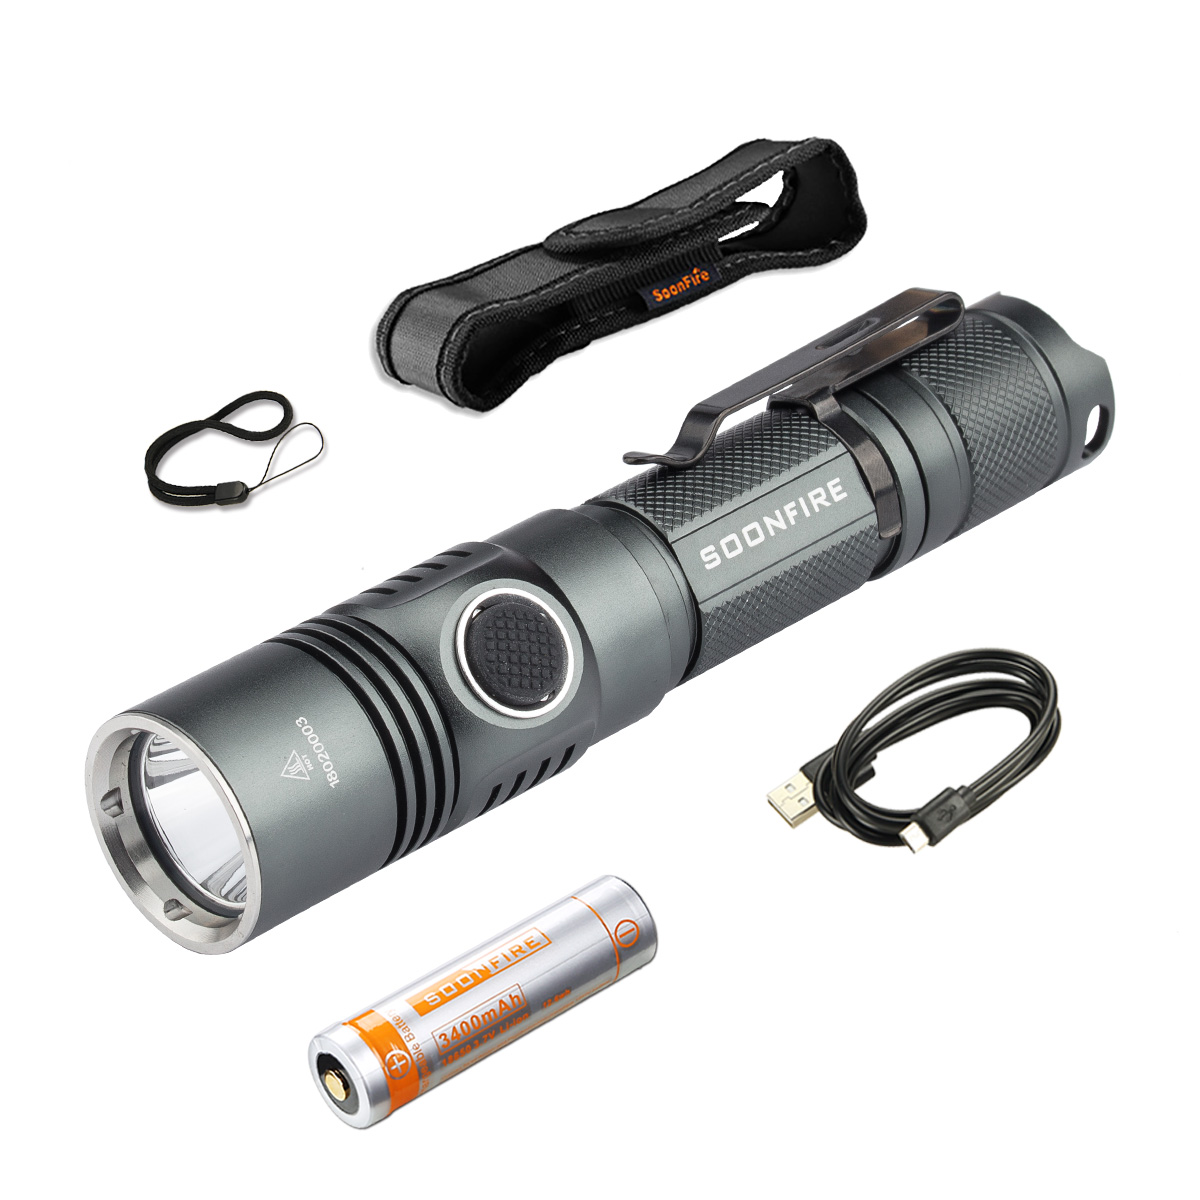 Soonfire DS31 Tactical Flashlight